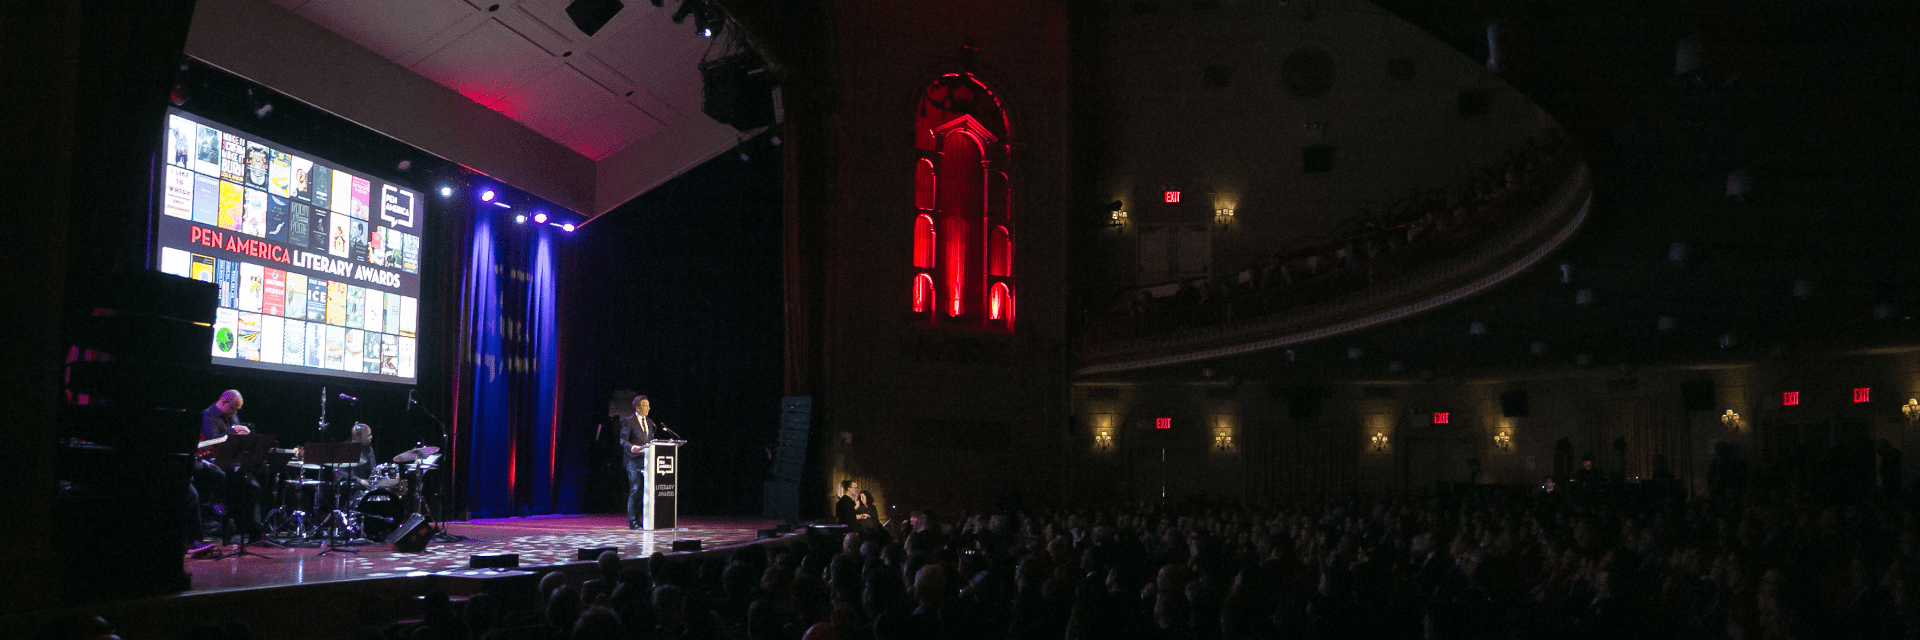 2020 Literary Awards Ceremony at The Town Hall